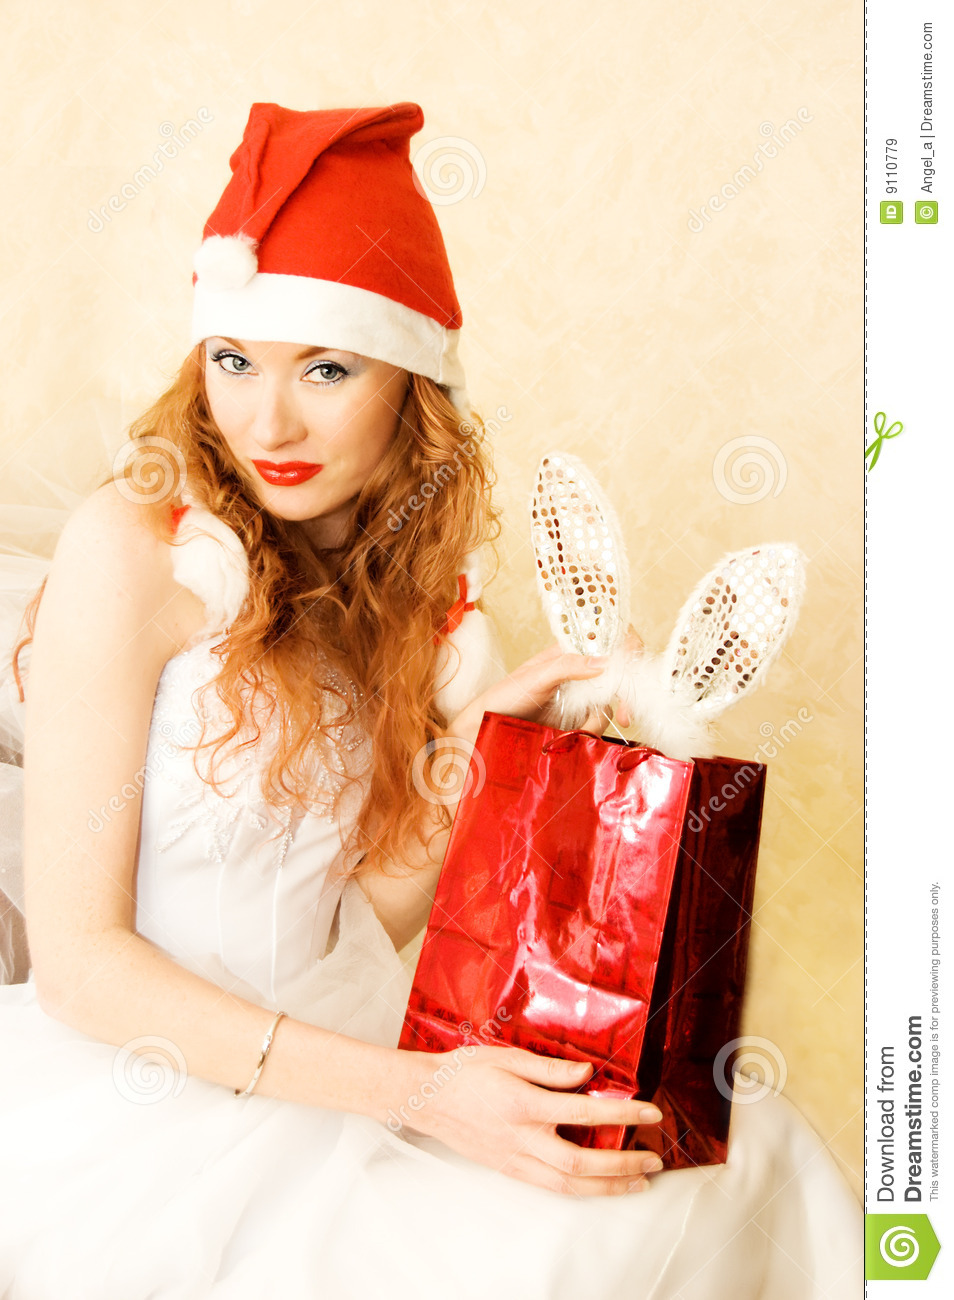 e790472a443b Redhead Santa helper stock image. Image of female